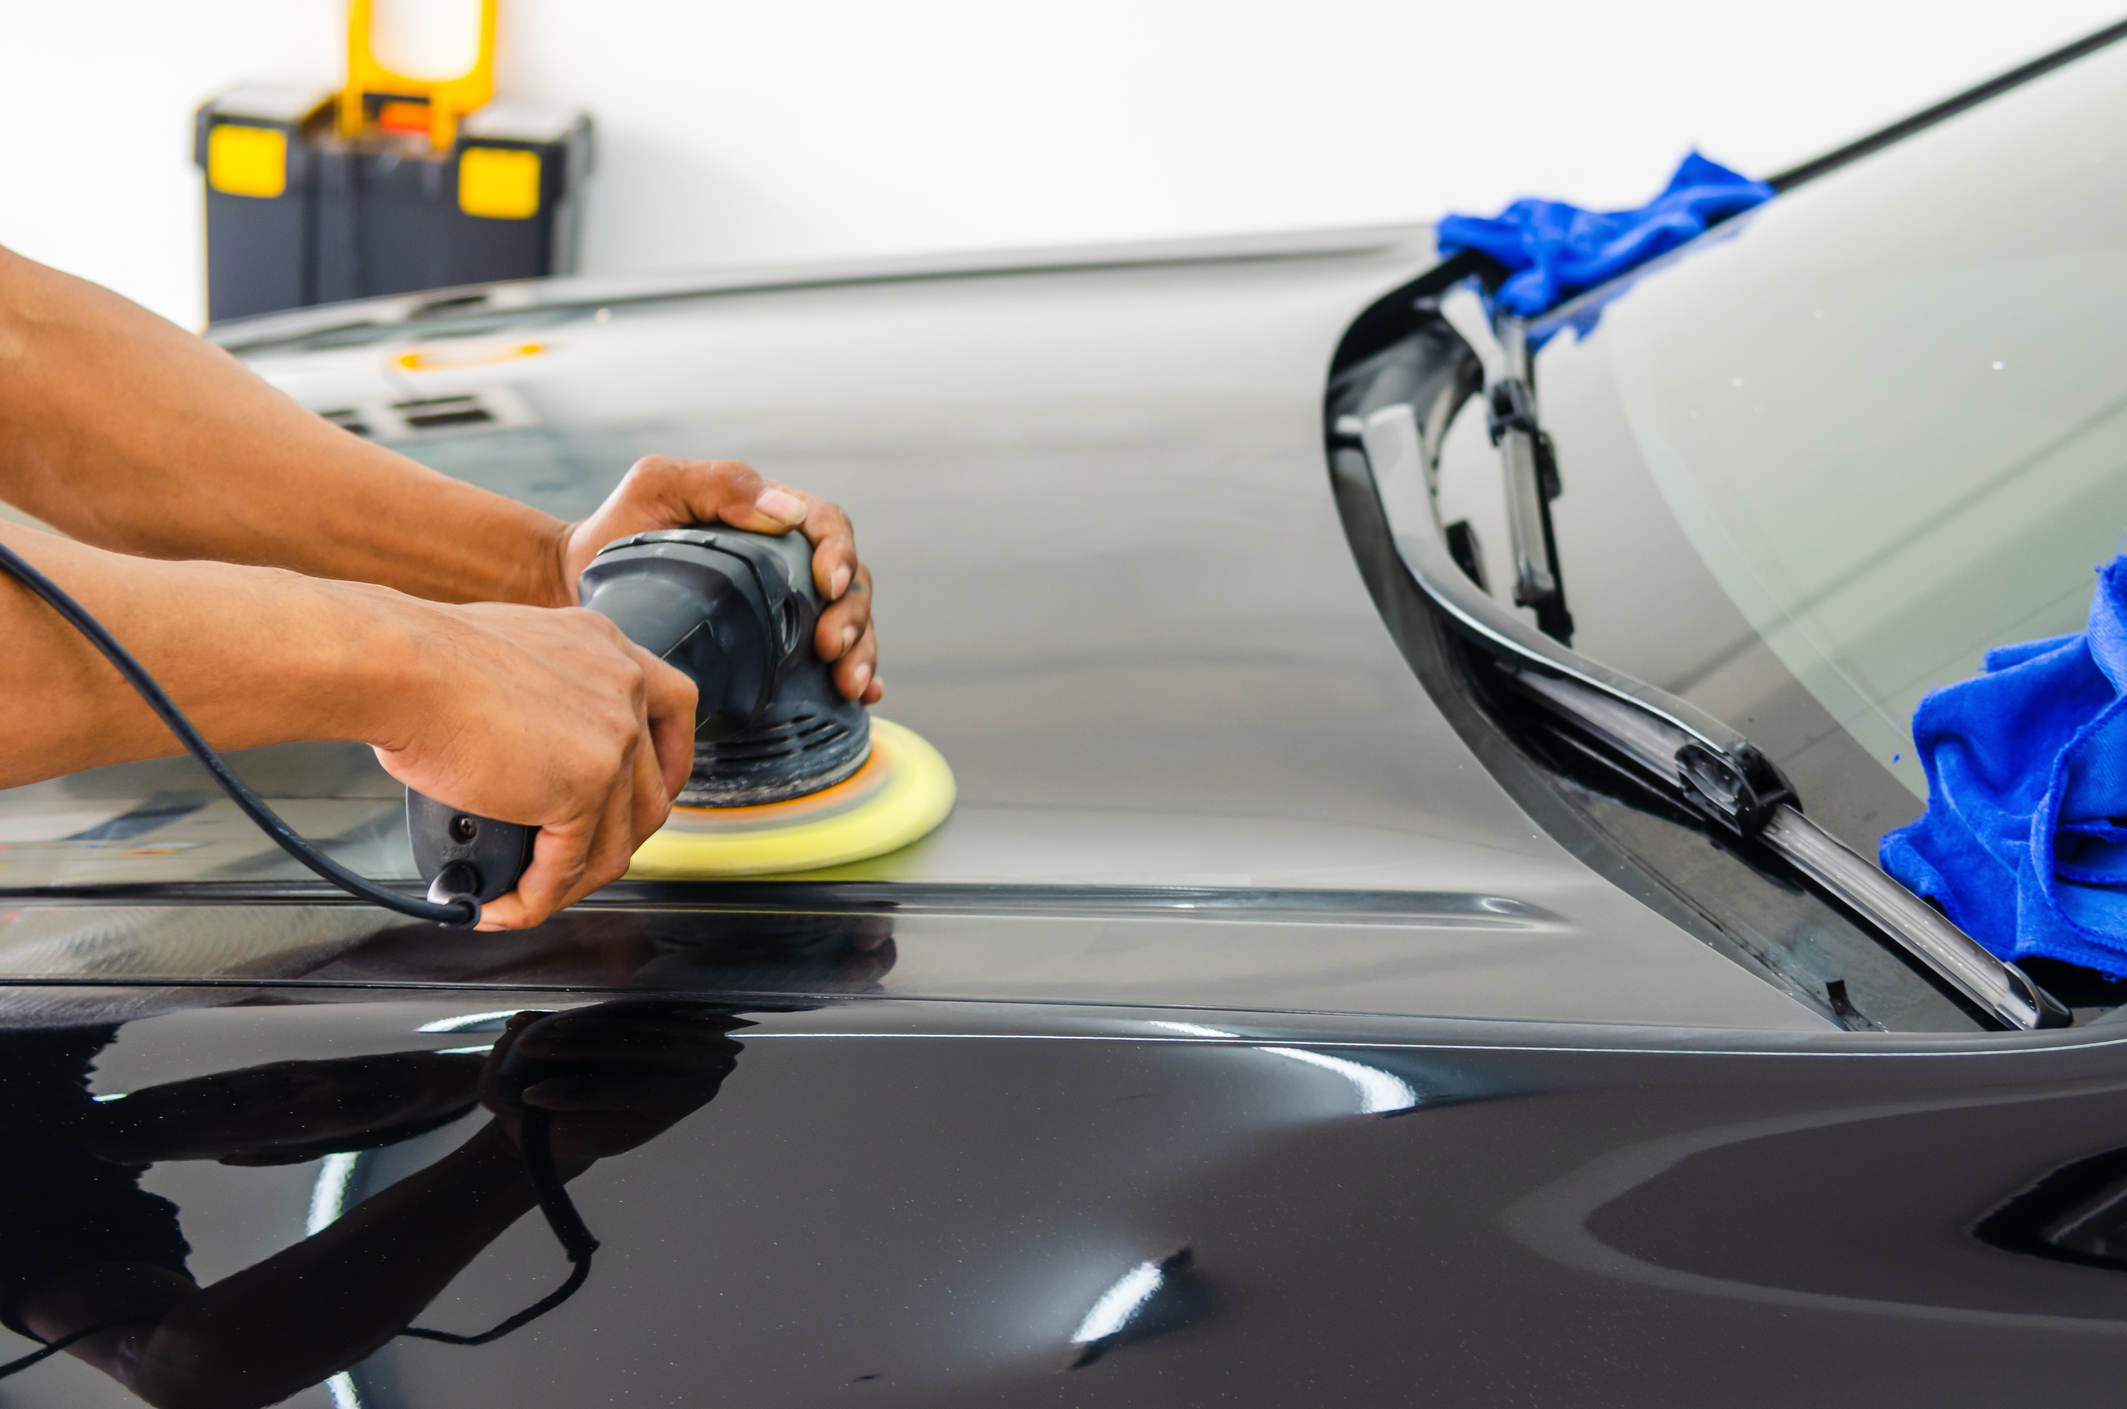 Auto detailing by Scheller Automotive will completely reinvigorate the appeal of your vehicle, both the interior and exterior.